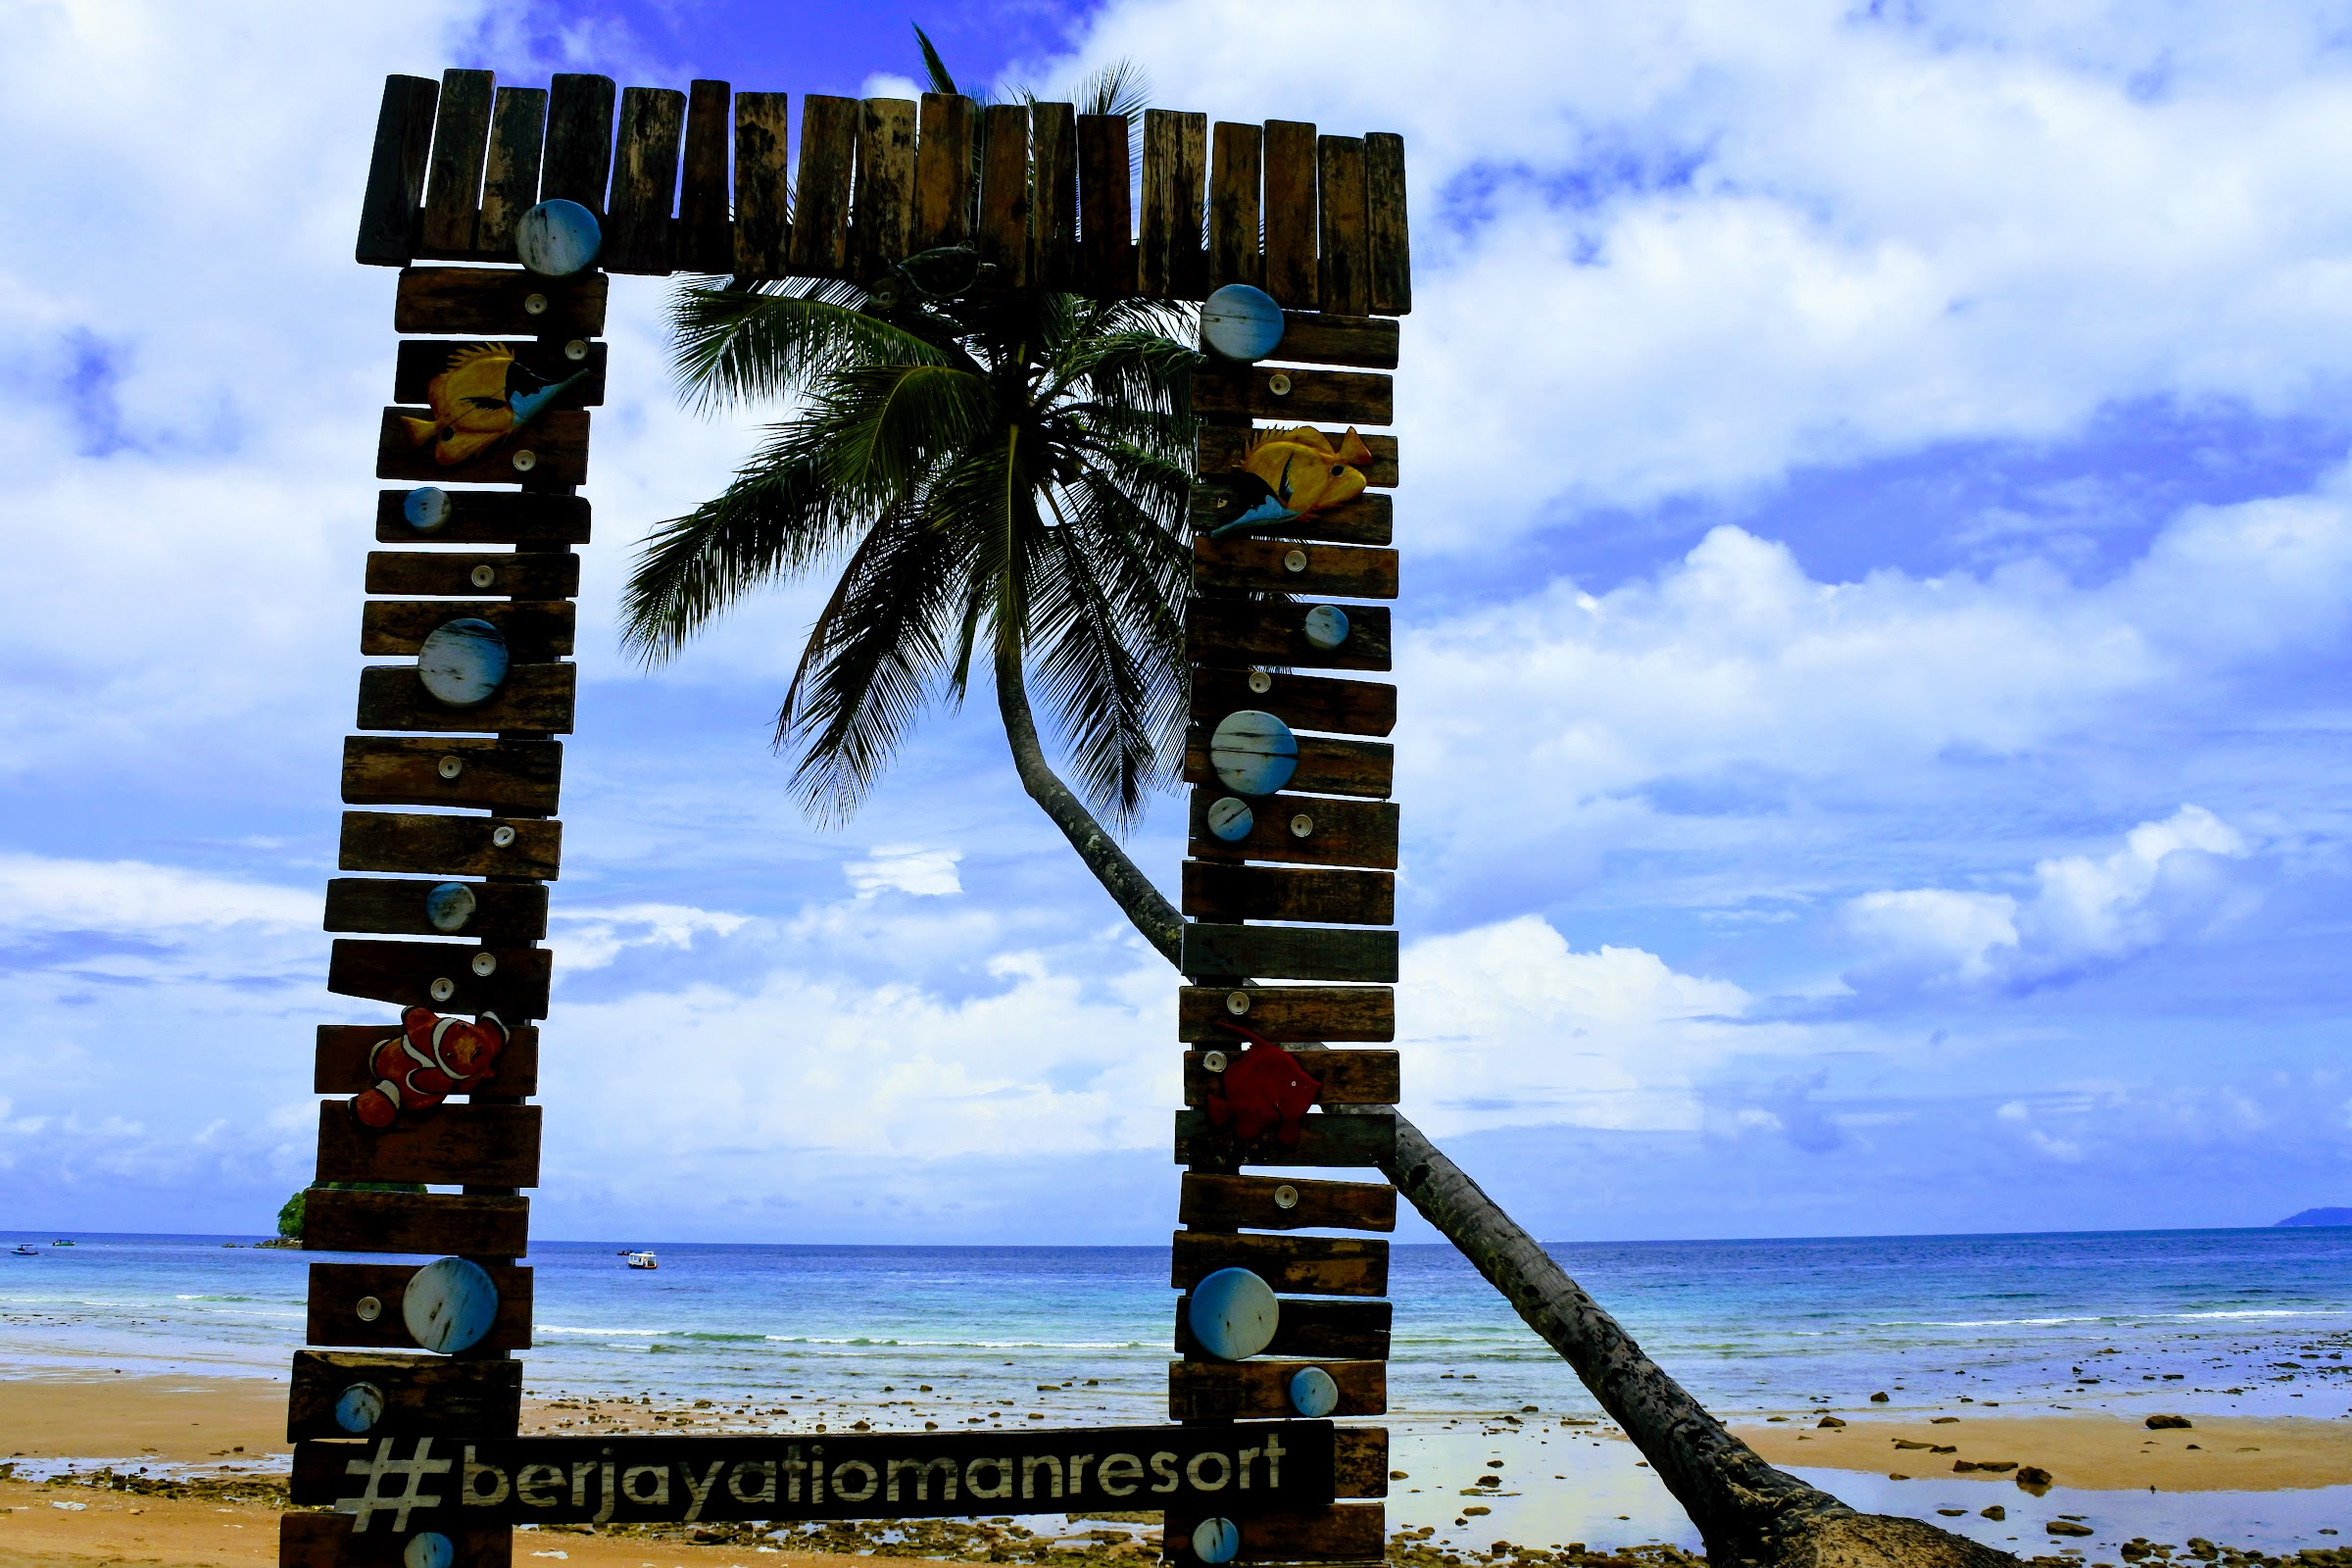 Honest review of Berjaya Tioman Resort: the beach is splendid!